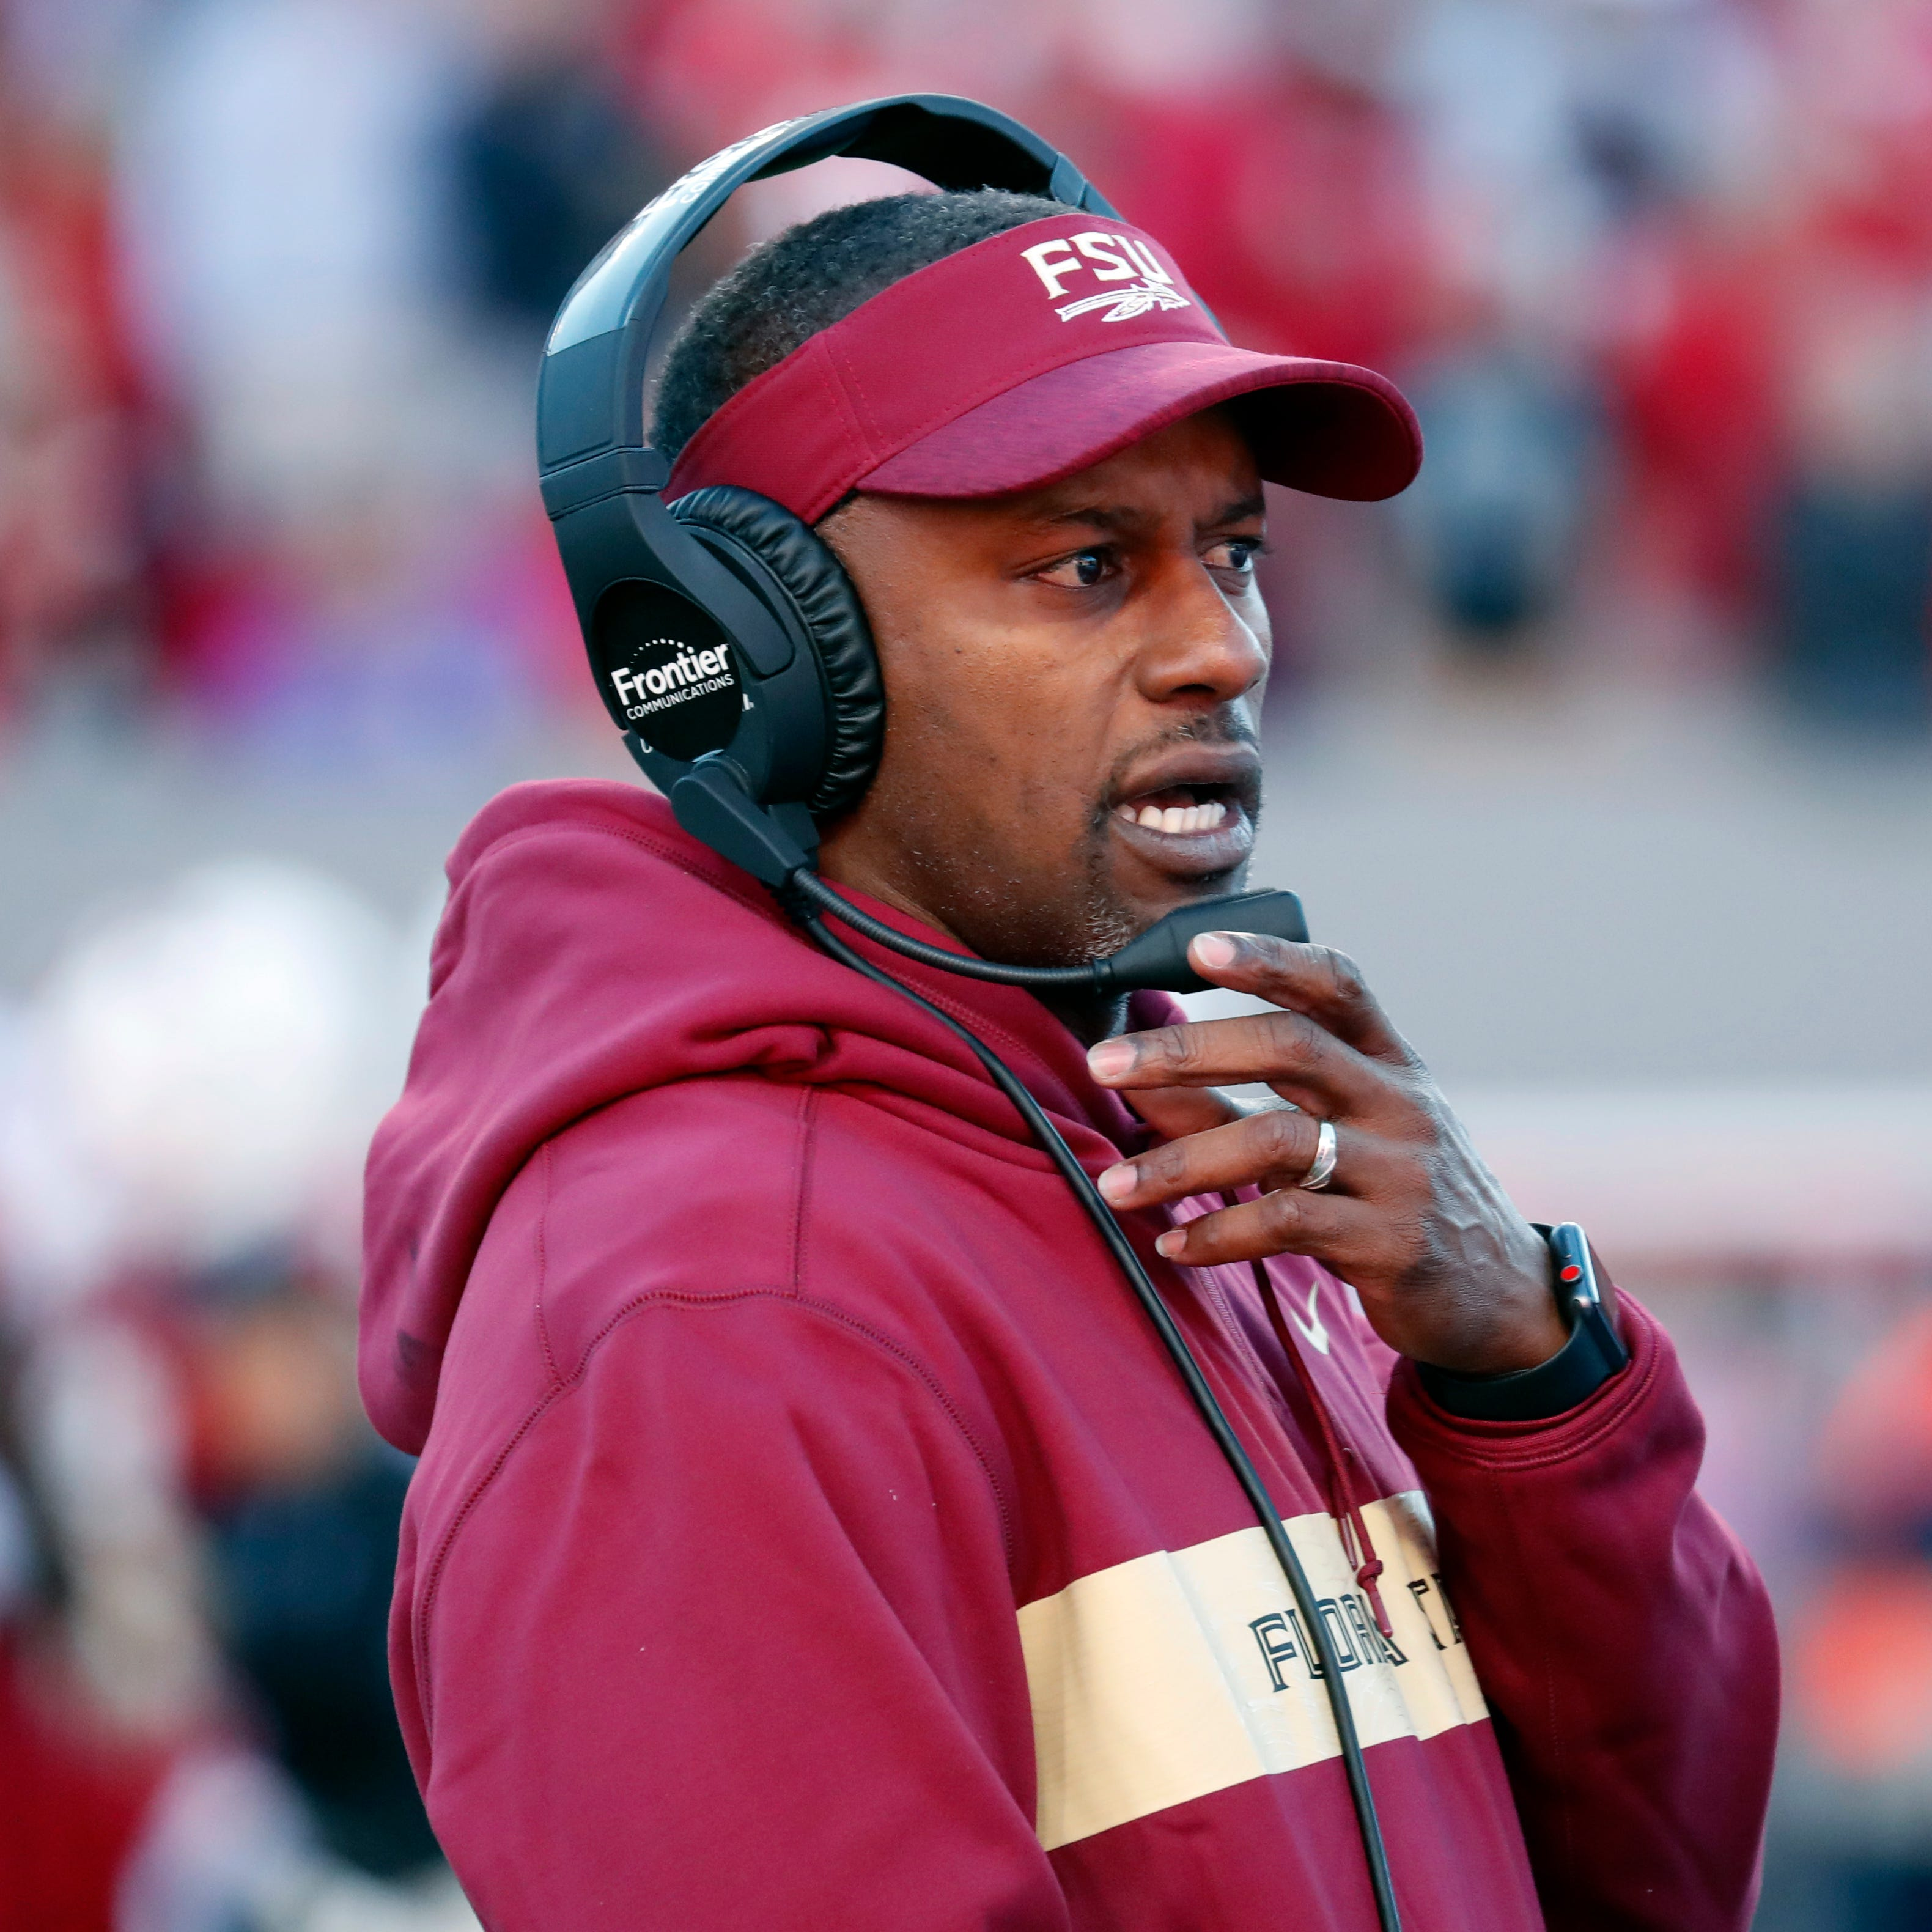 Taggart back on track with Top-20 class